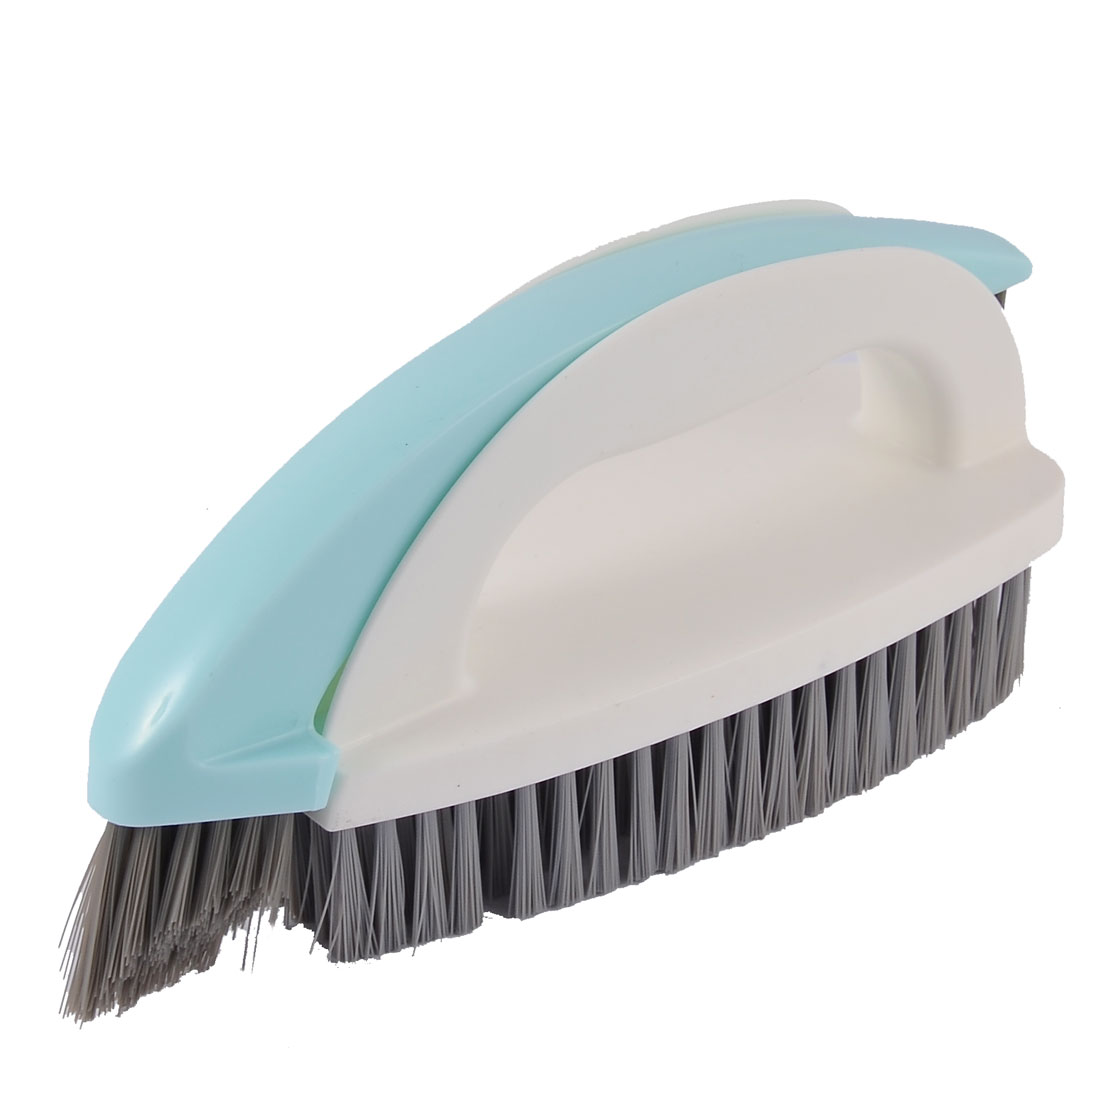 House Kitchen Plastic Ship Shaped Floor Gap Cleaning Scrubbing Brush